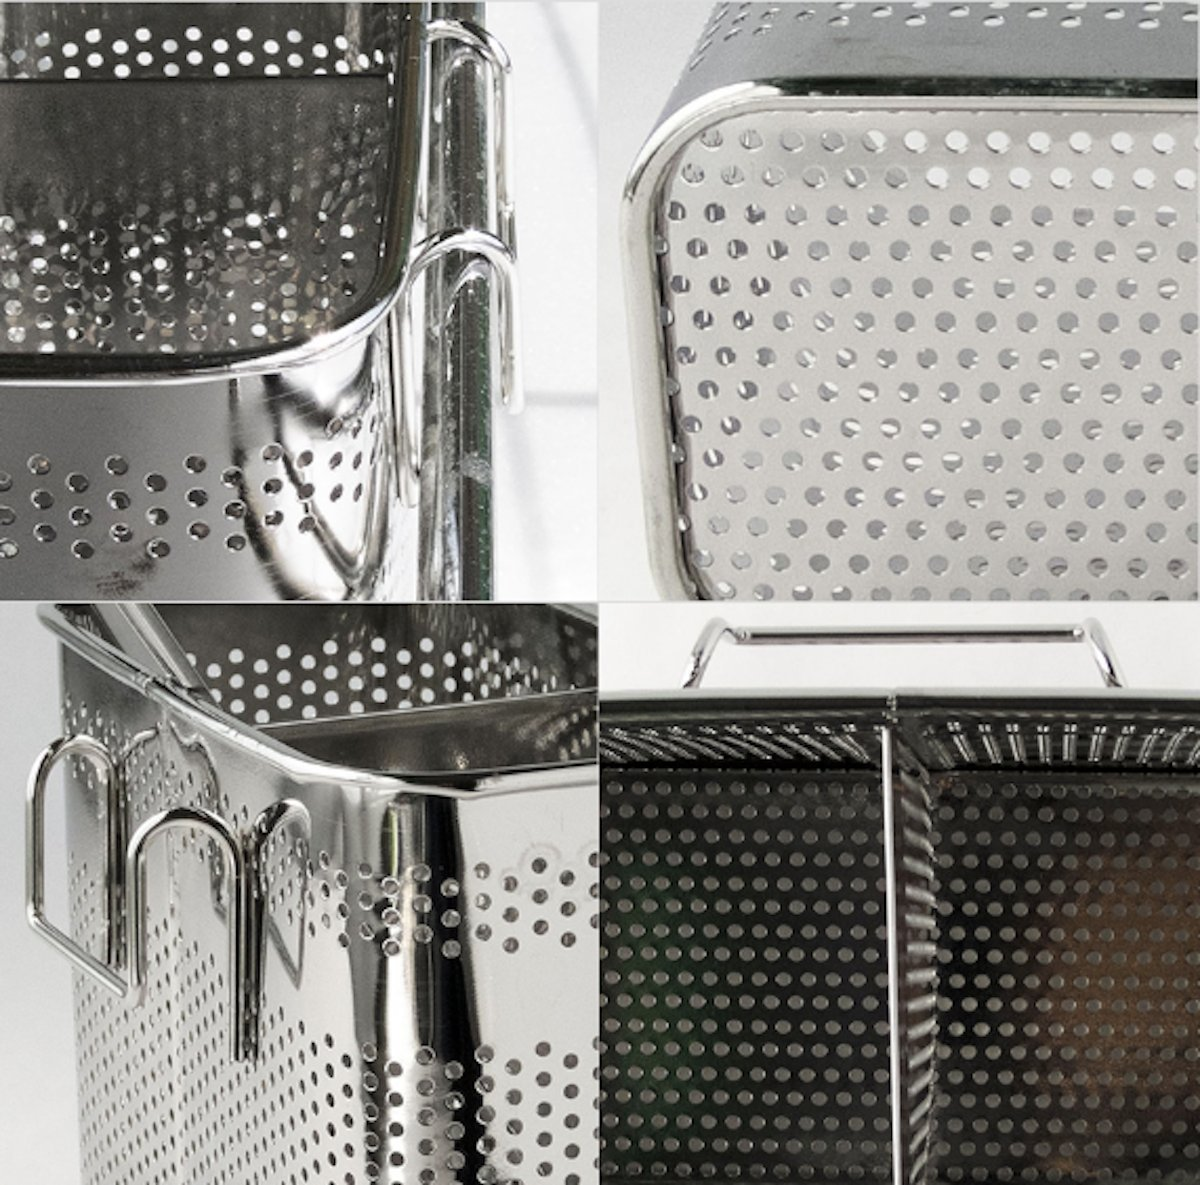 Basic pack Kitchen Utensils Chopsticks Holder Drying Rack Basket with Hooks 2 Divided Compartments Quality Stainless Steel Large L5.4 X H4.3 X W2.6